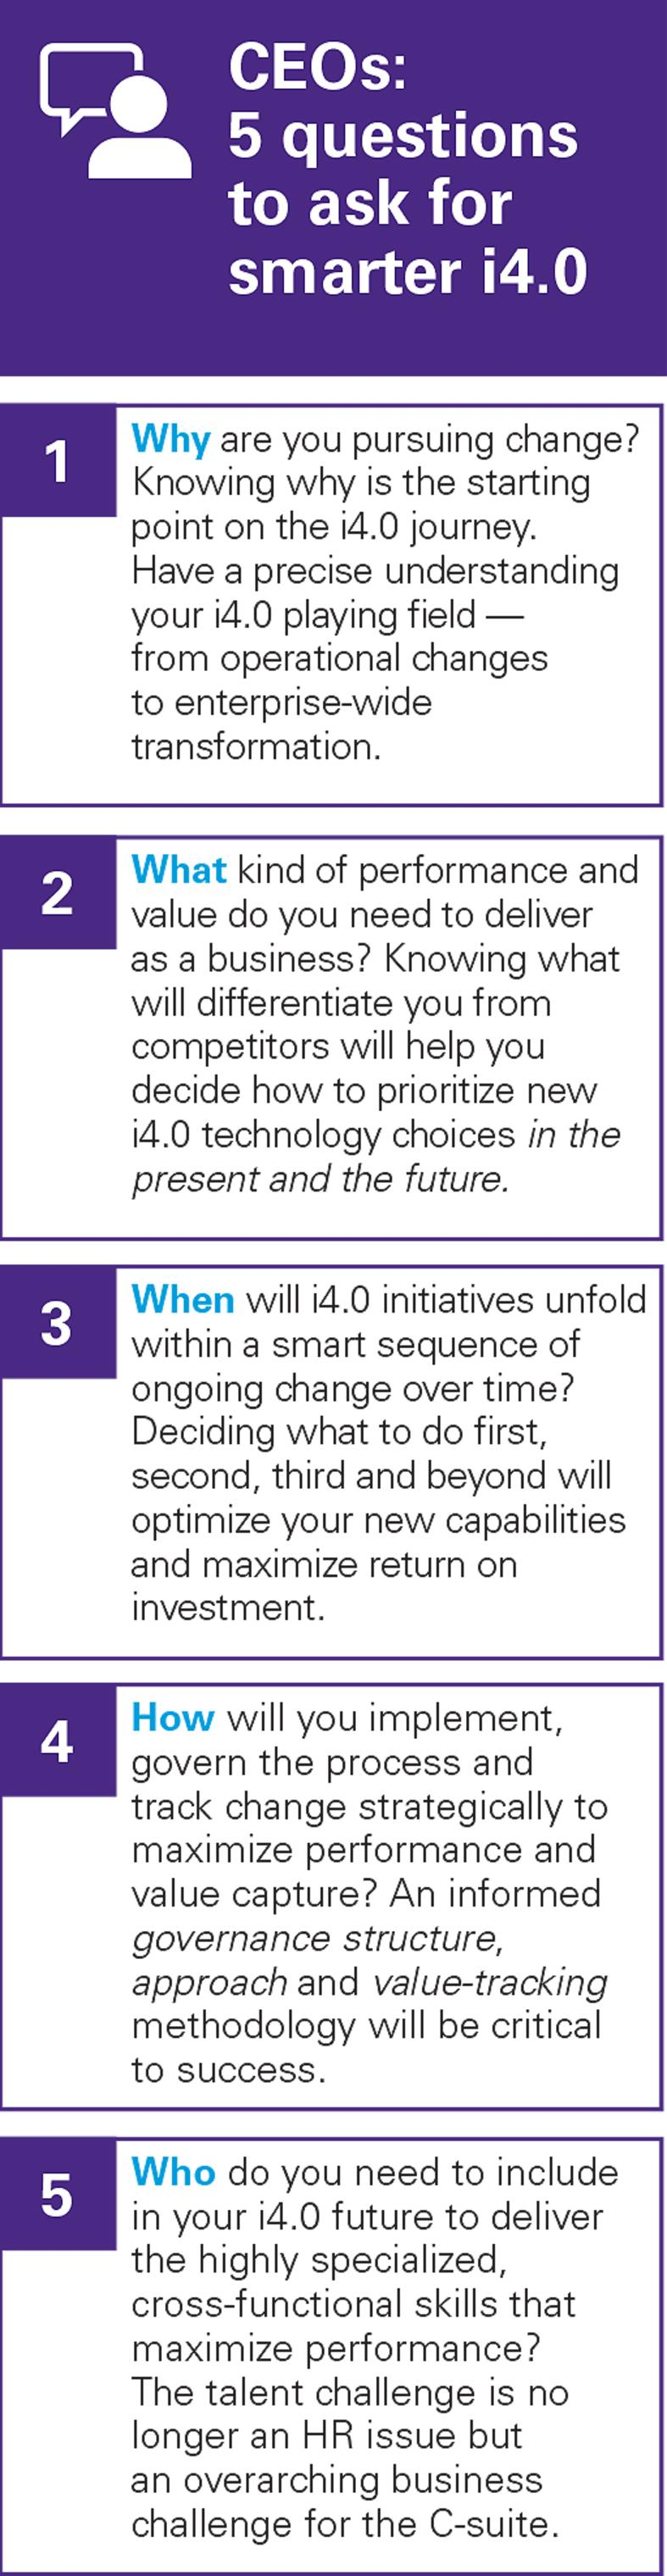 Five questions to ask for smarter 14.0 infographic